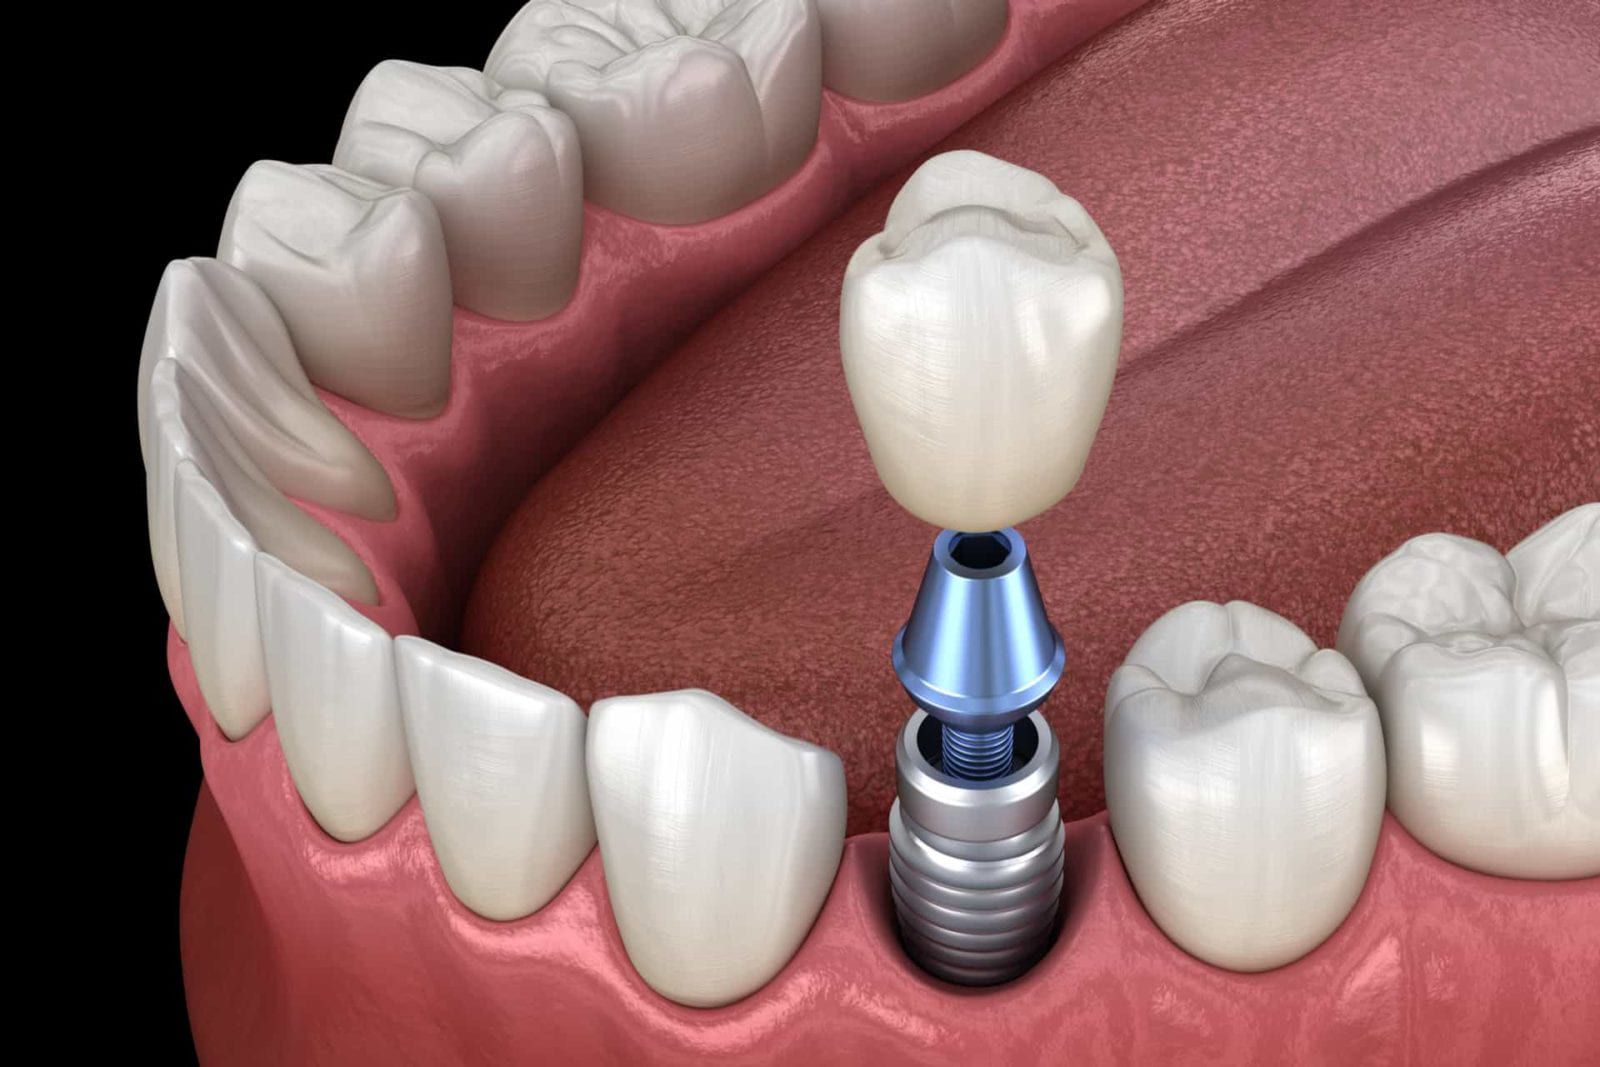 dental implant being inserted into 3d graphic model